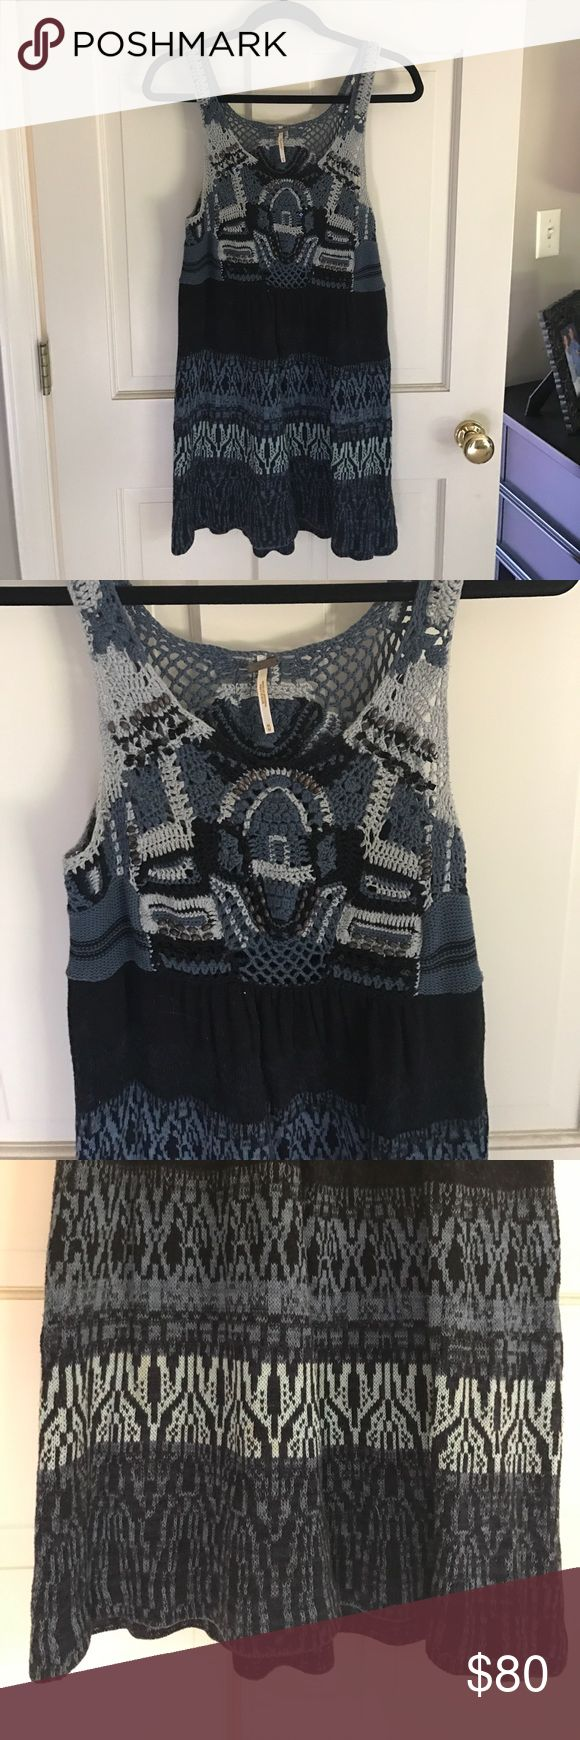 Free People Crochet Mini Dress Beautiful sweater-like material dress with beads and sequin embellishments. The color includes different variations of blue. Great condition, worn only a few times. Great casual dress! Free People Dresses Mini